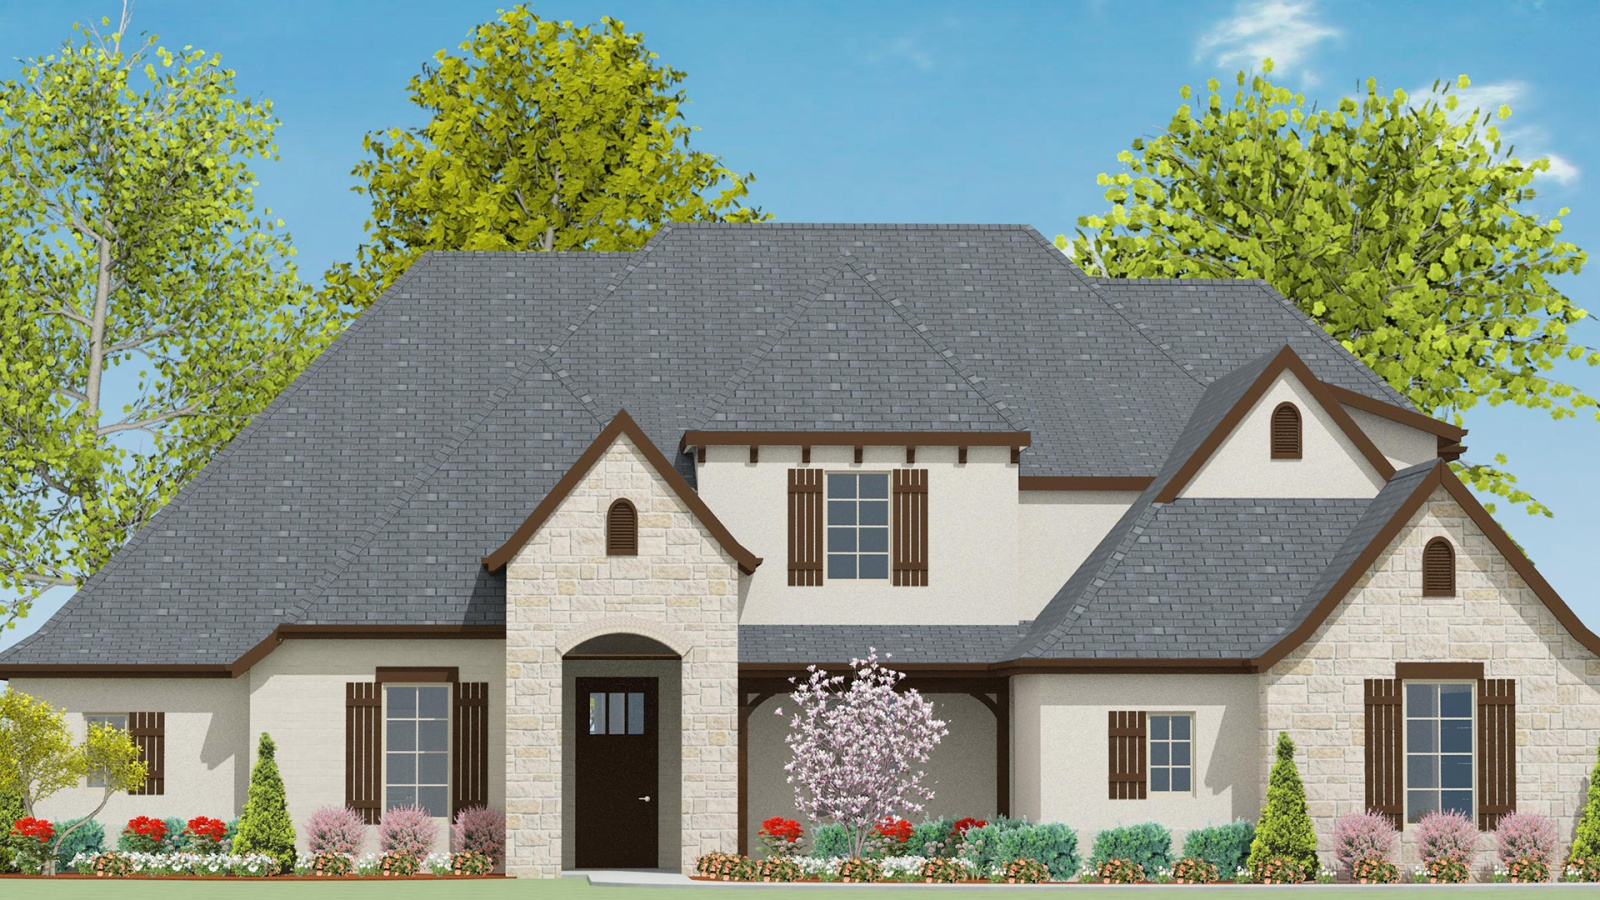 4 Bedrooms Bedrooms, ,4 BathroomsBathrooms,Custom Home,Home Plans,1032